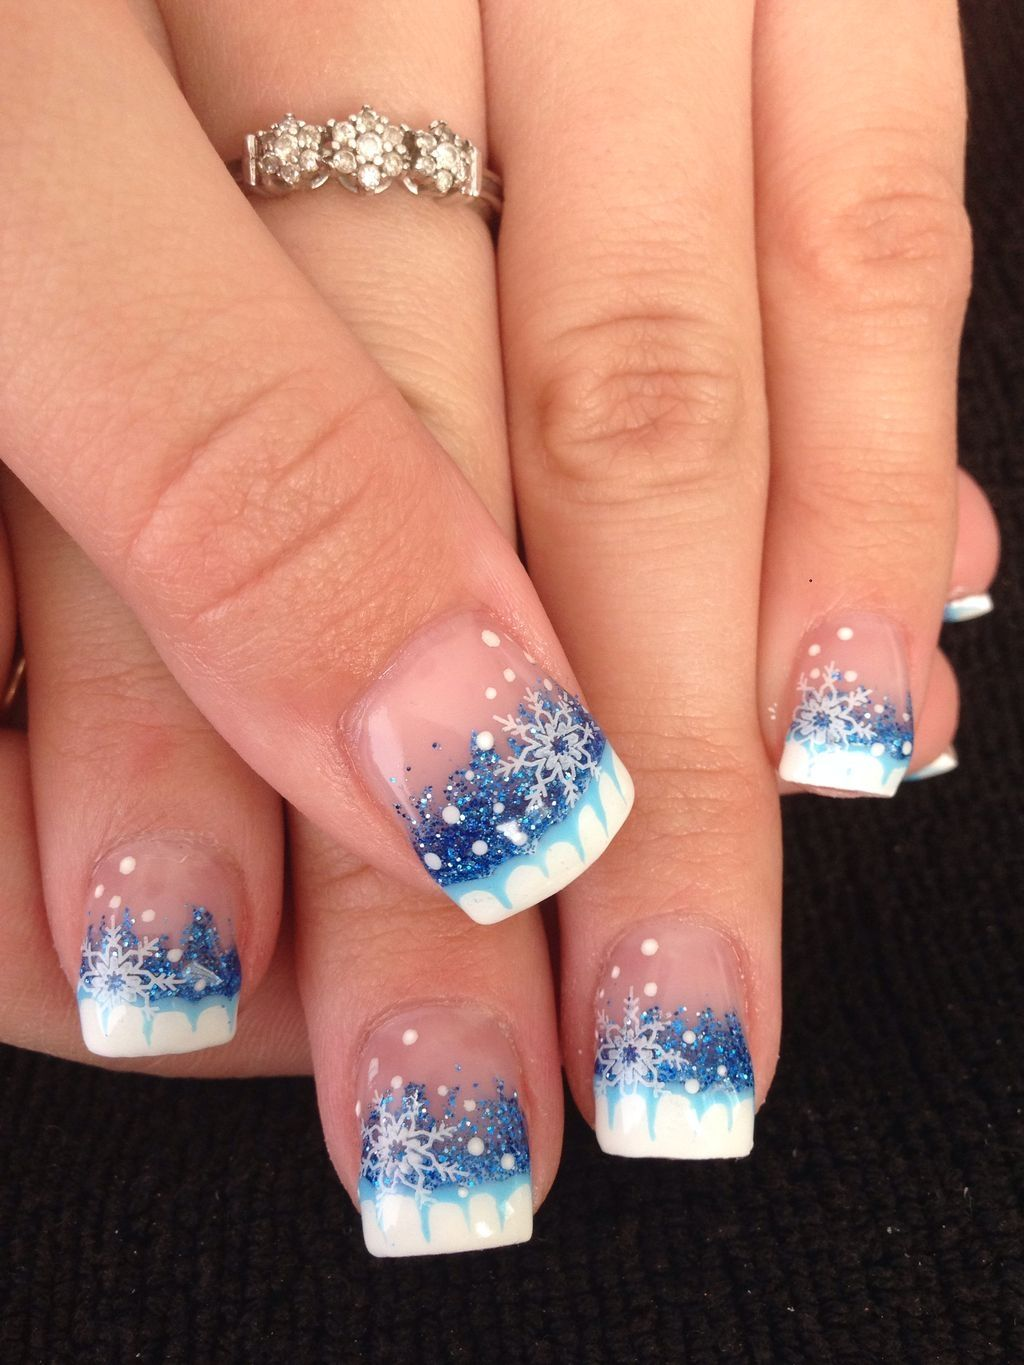 64 Adorable Winter Nails Art Design Inspiration Ideas | Winter nail ...